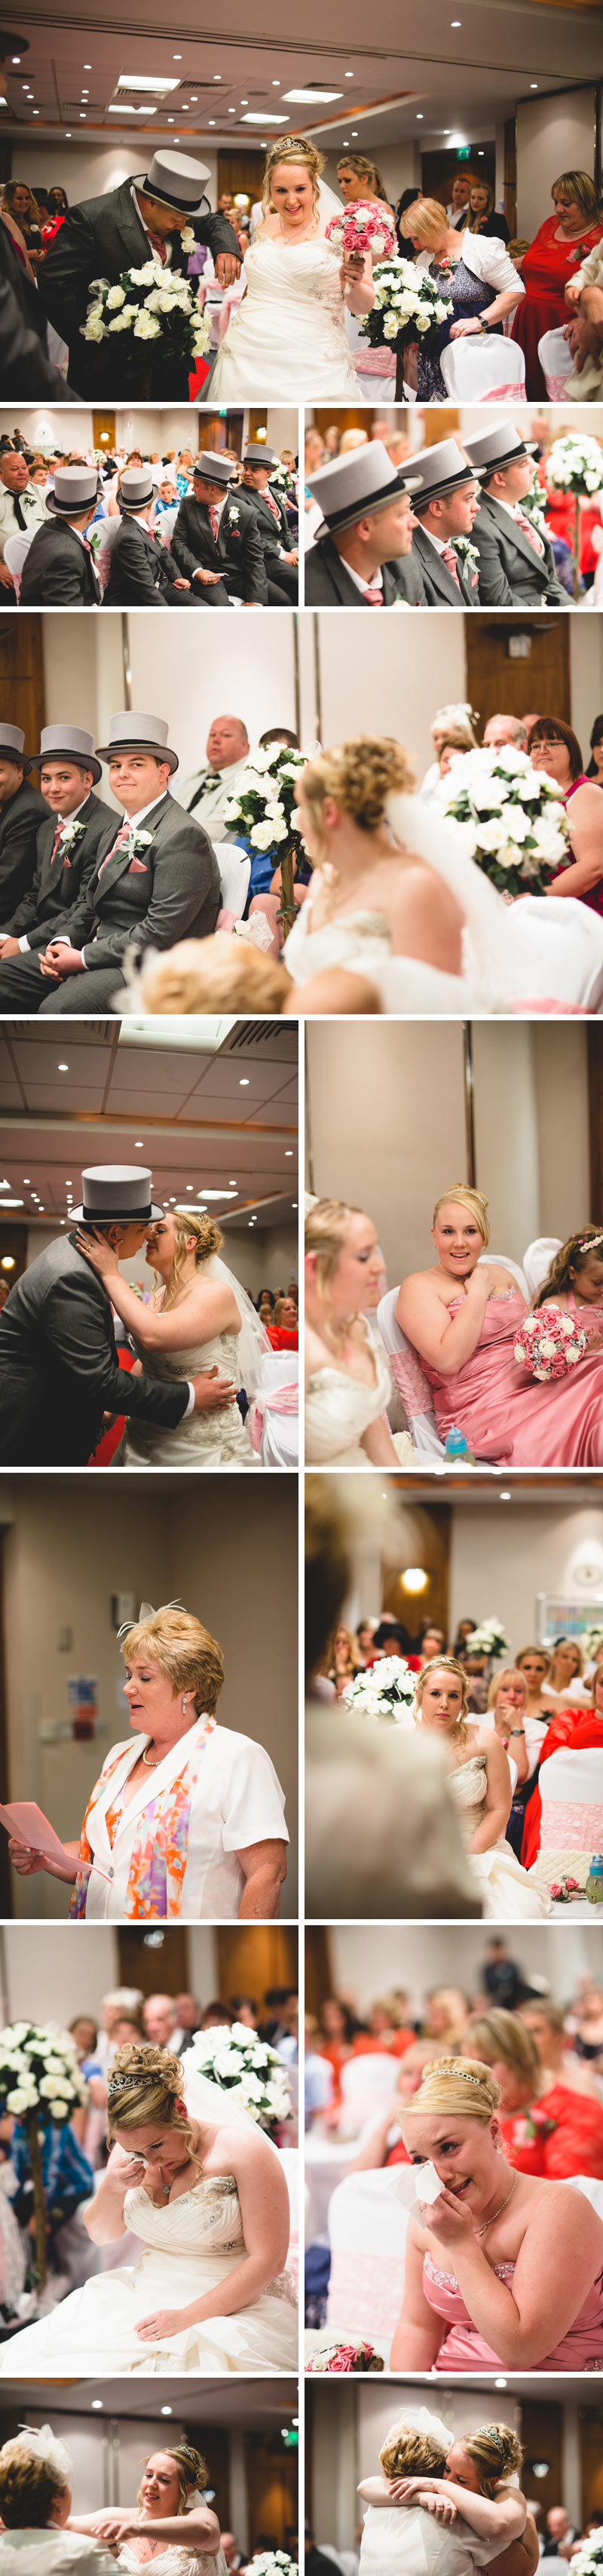 Bexley Wedding Photography Holiday Inn Bexleyheath